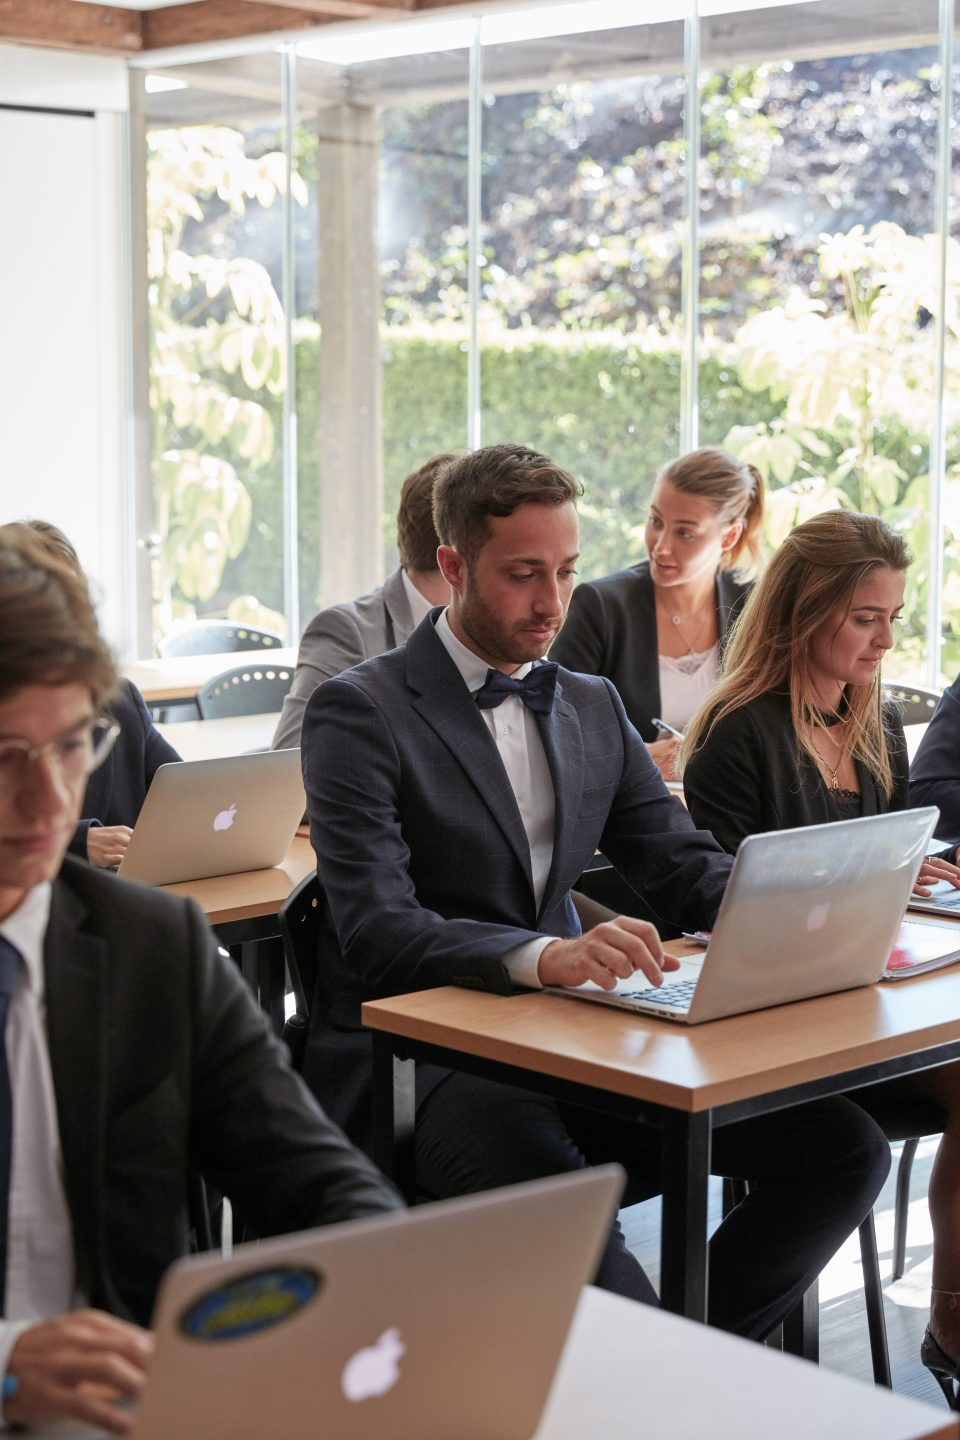 Les Roches Marbella: training the future leaders of Luxury Hospitality and Tourism 1